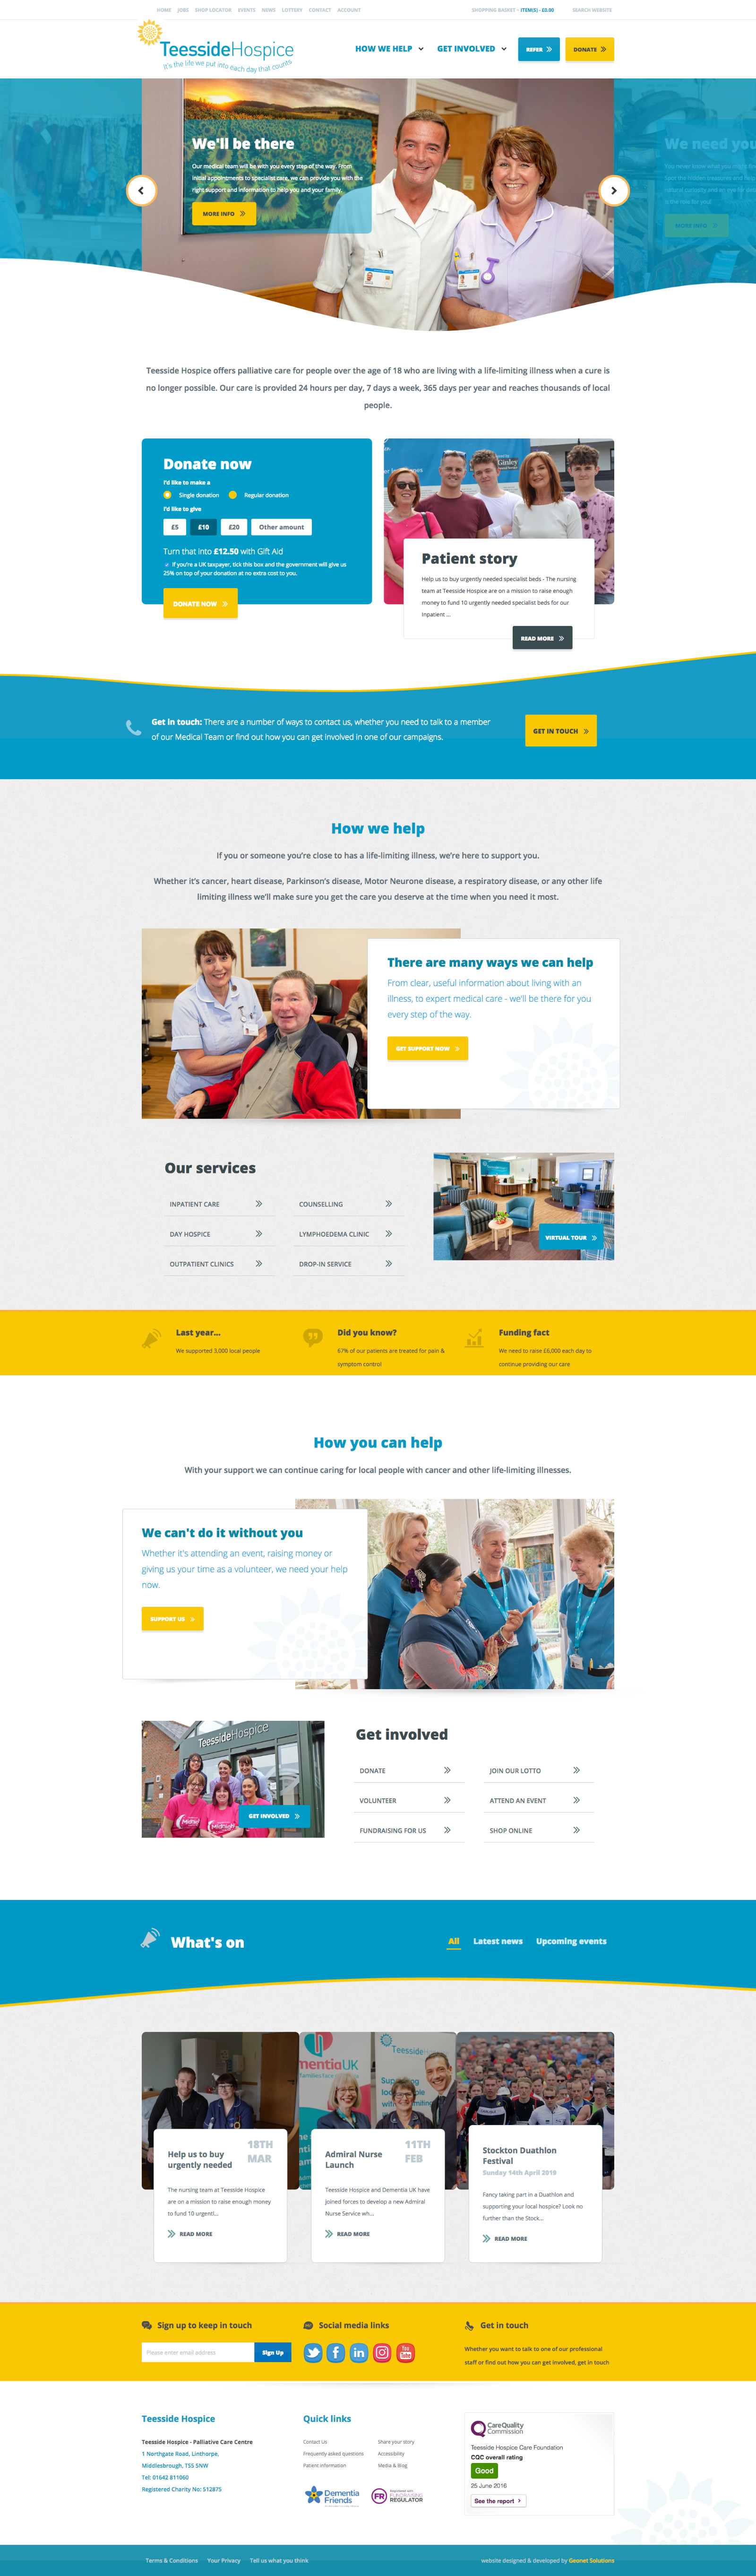 Teesside Hospice Web Design l Hush Digital | Web Design Darlington